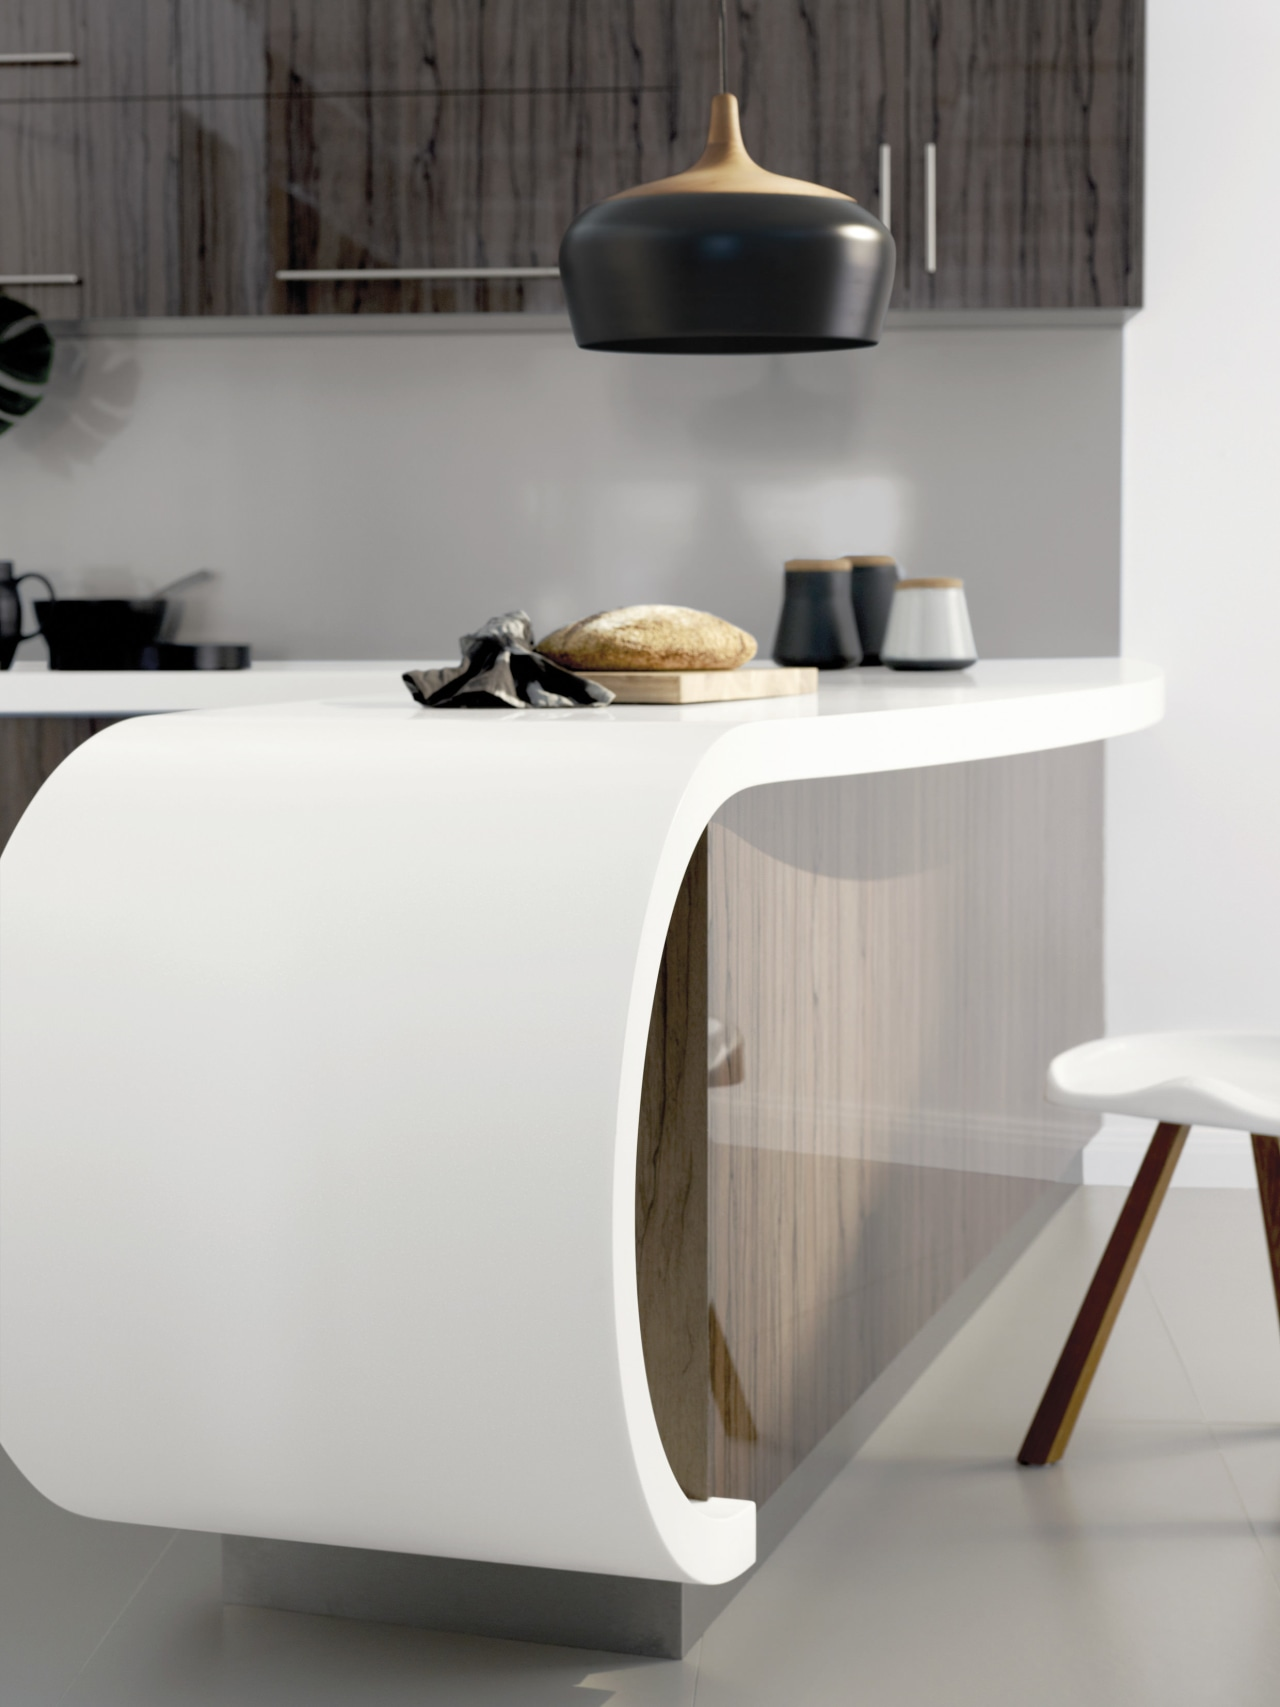 Laminex Solid Surfaces are a cost-effective option for chest of drawers, furniture, interior design, product design, sideboard, table, tap, gray